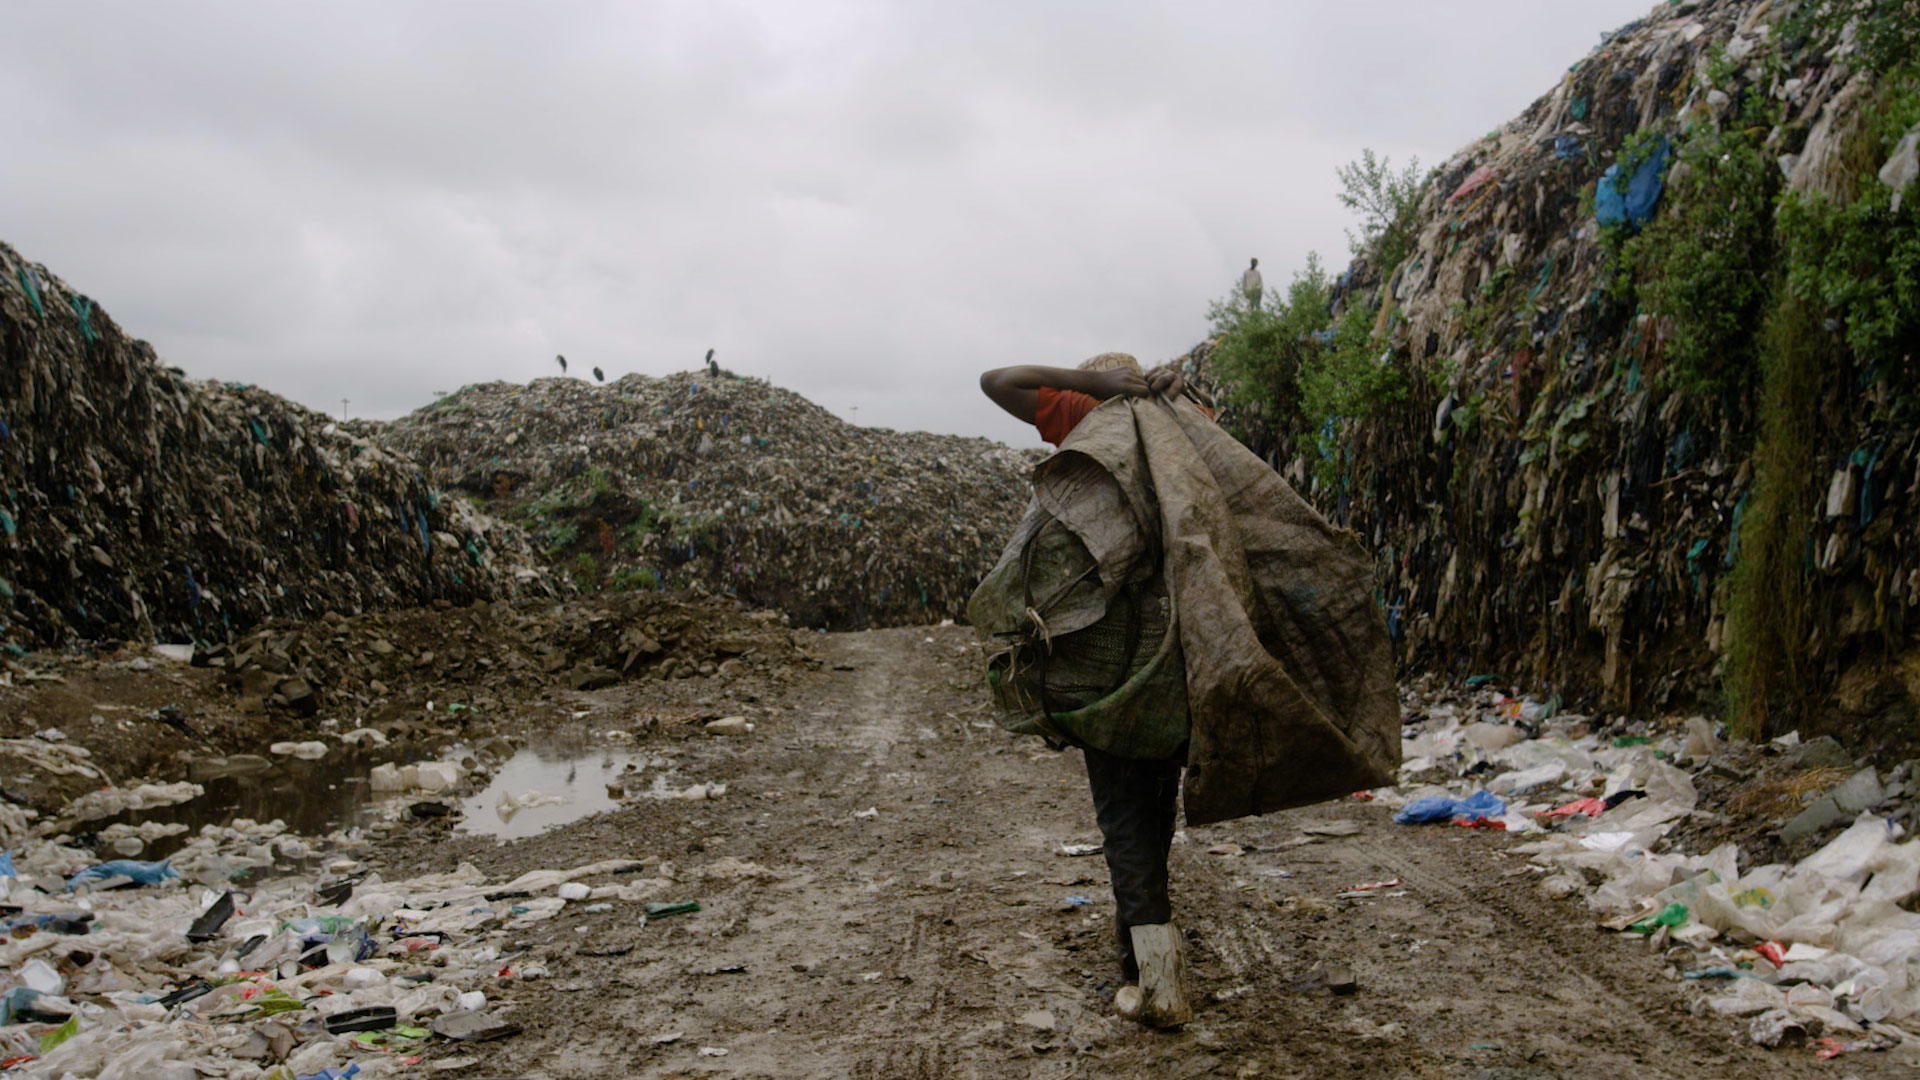 A man walks through the Dandora Landfill in Nairobi, Kenya. A film still from Anthropocene: The Human Epoch